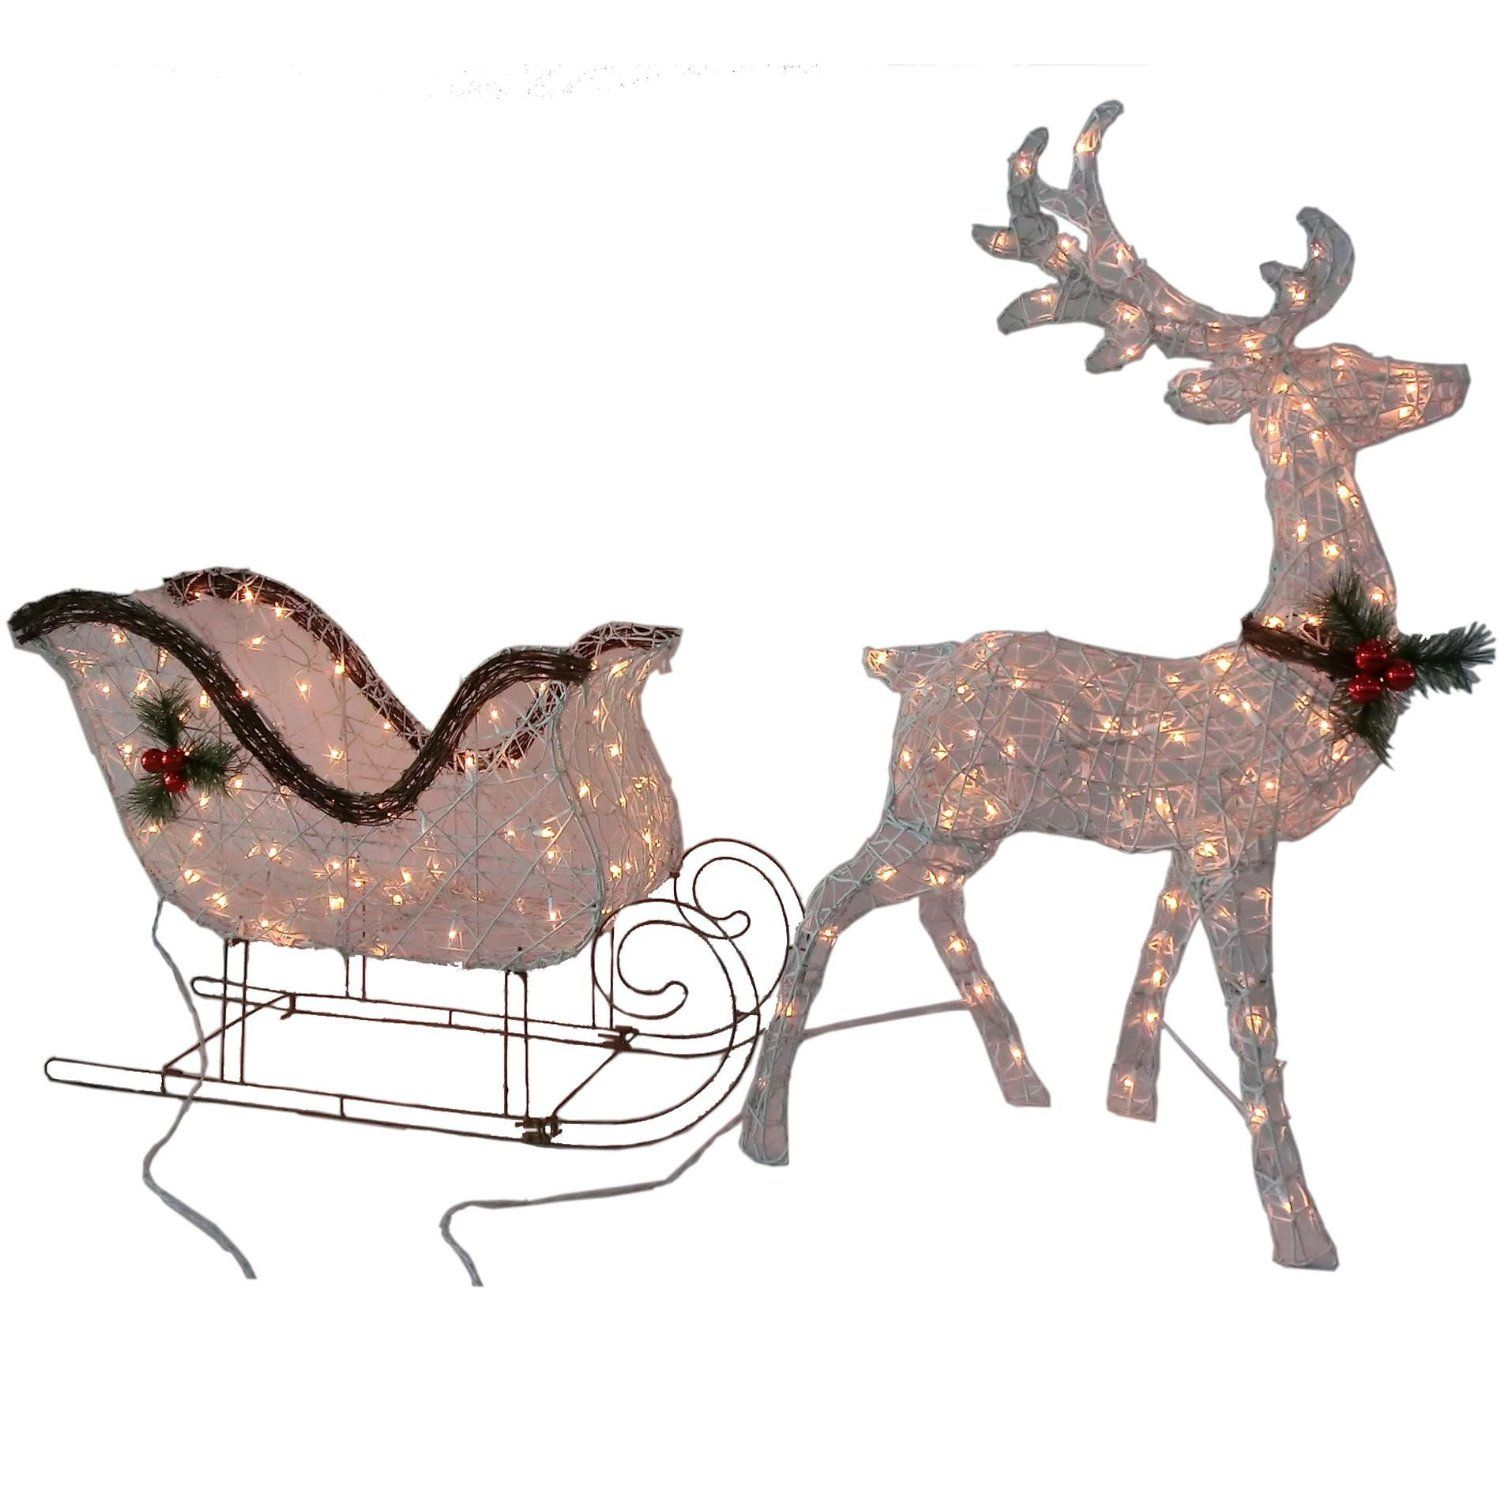 Santa sleigh ornament - 2pc Lighted Reindeer Buck Deer Santa Sleigh Ride Clear Lights Christmas Decor Yard Outdoor Holiday Decoration